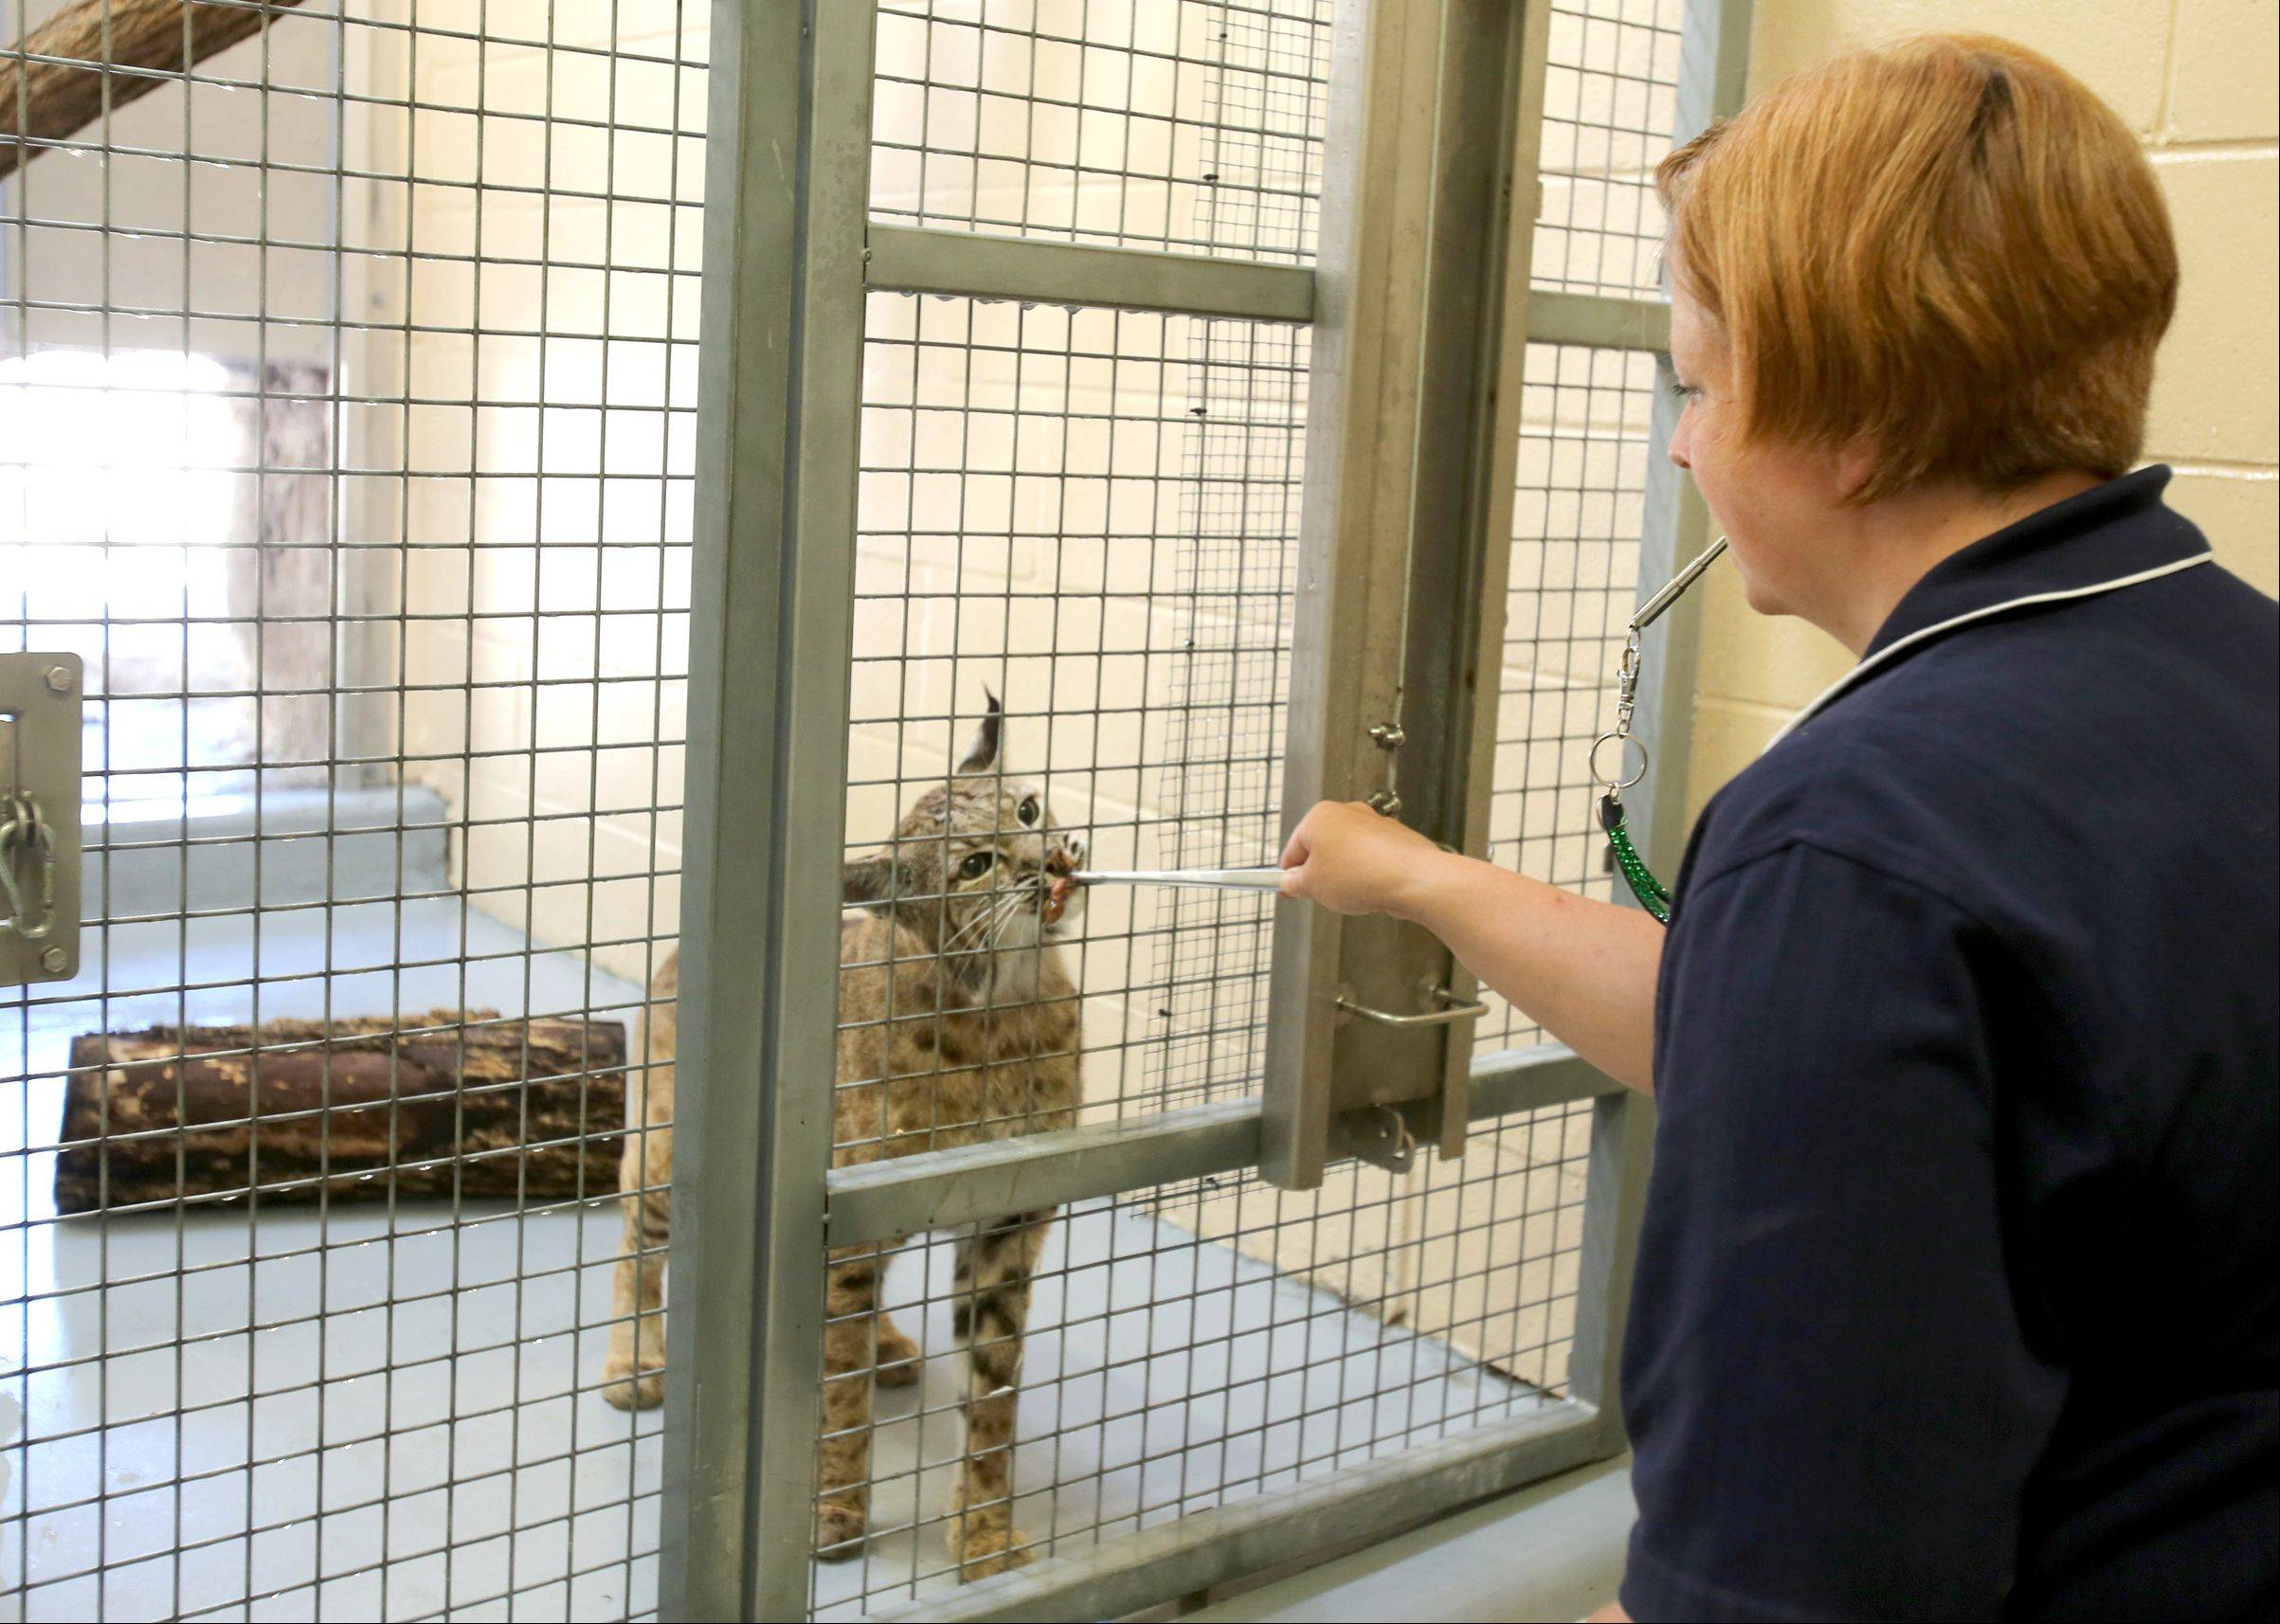 Jenny Theuman interacts with a bobcat through a fence.